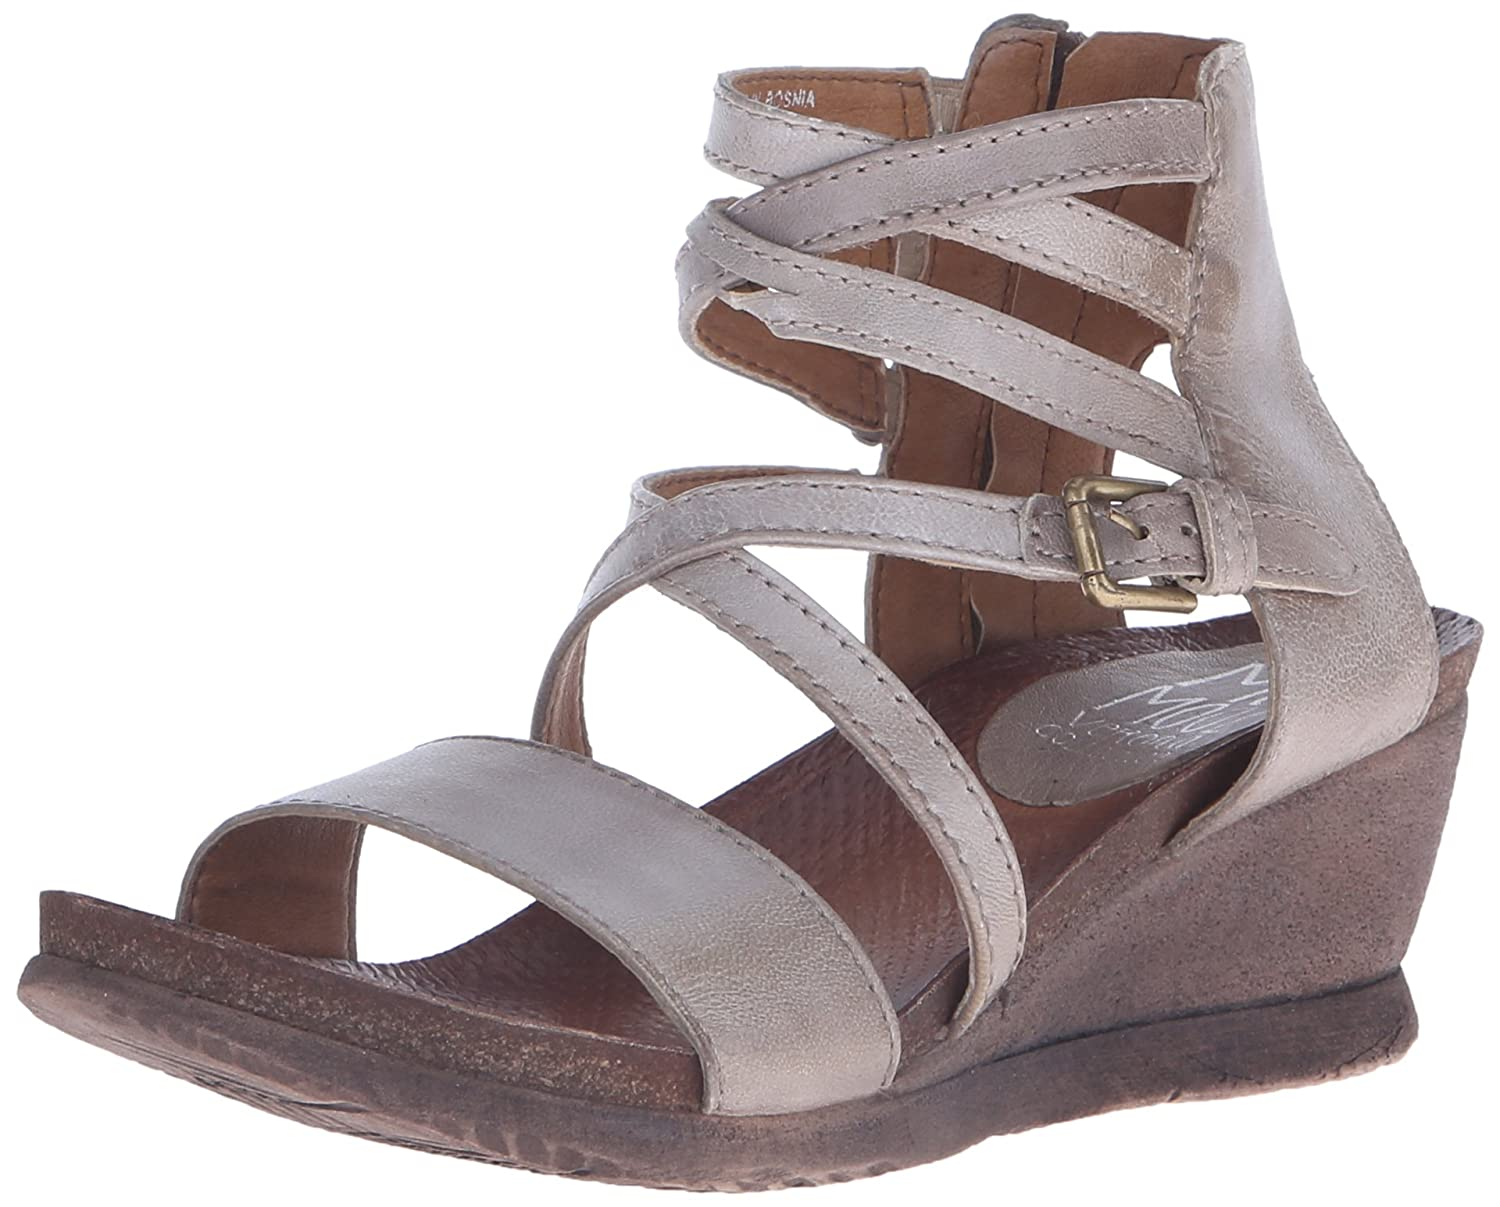 Stone Miz Mooz Women's Shay Fashion Sandals